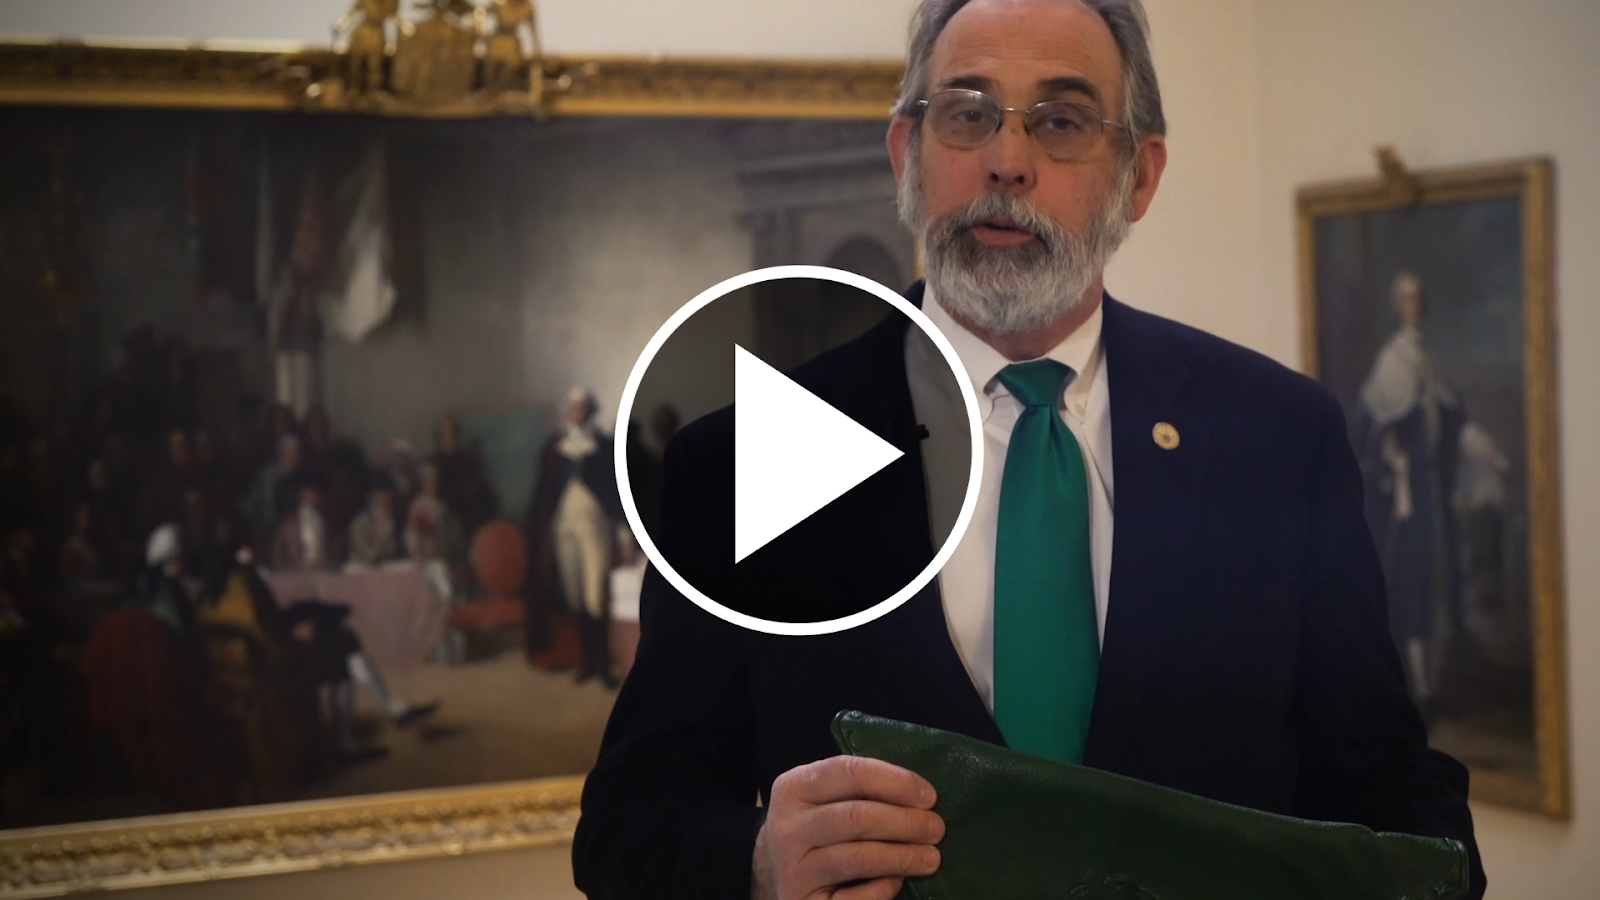 Secretary Cavey and Governor Hogan announce green bag appointments in a video